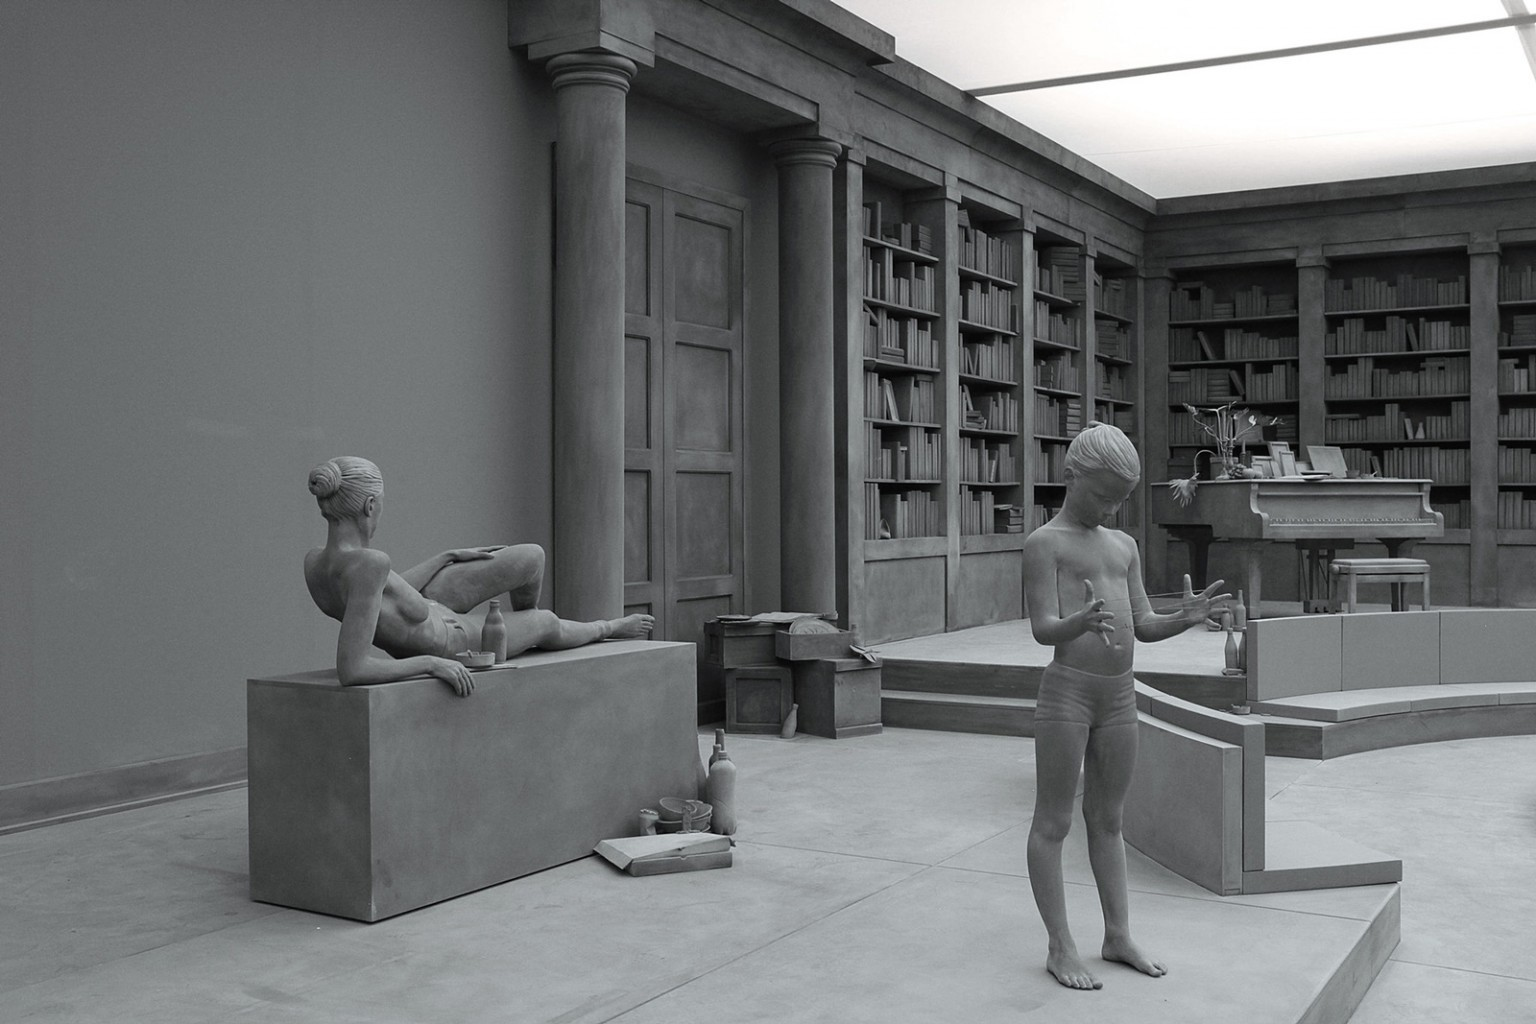 Lifelike Sculpted Figures and Immersive Monochrome Environments by Hans Op de Beeck